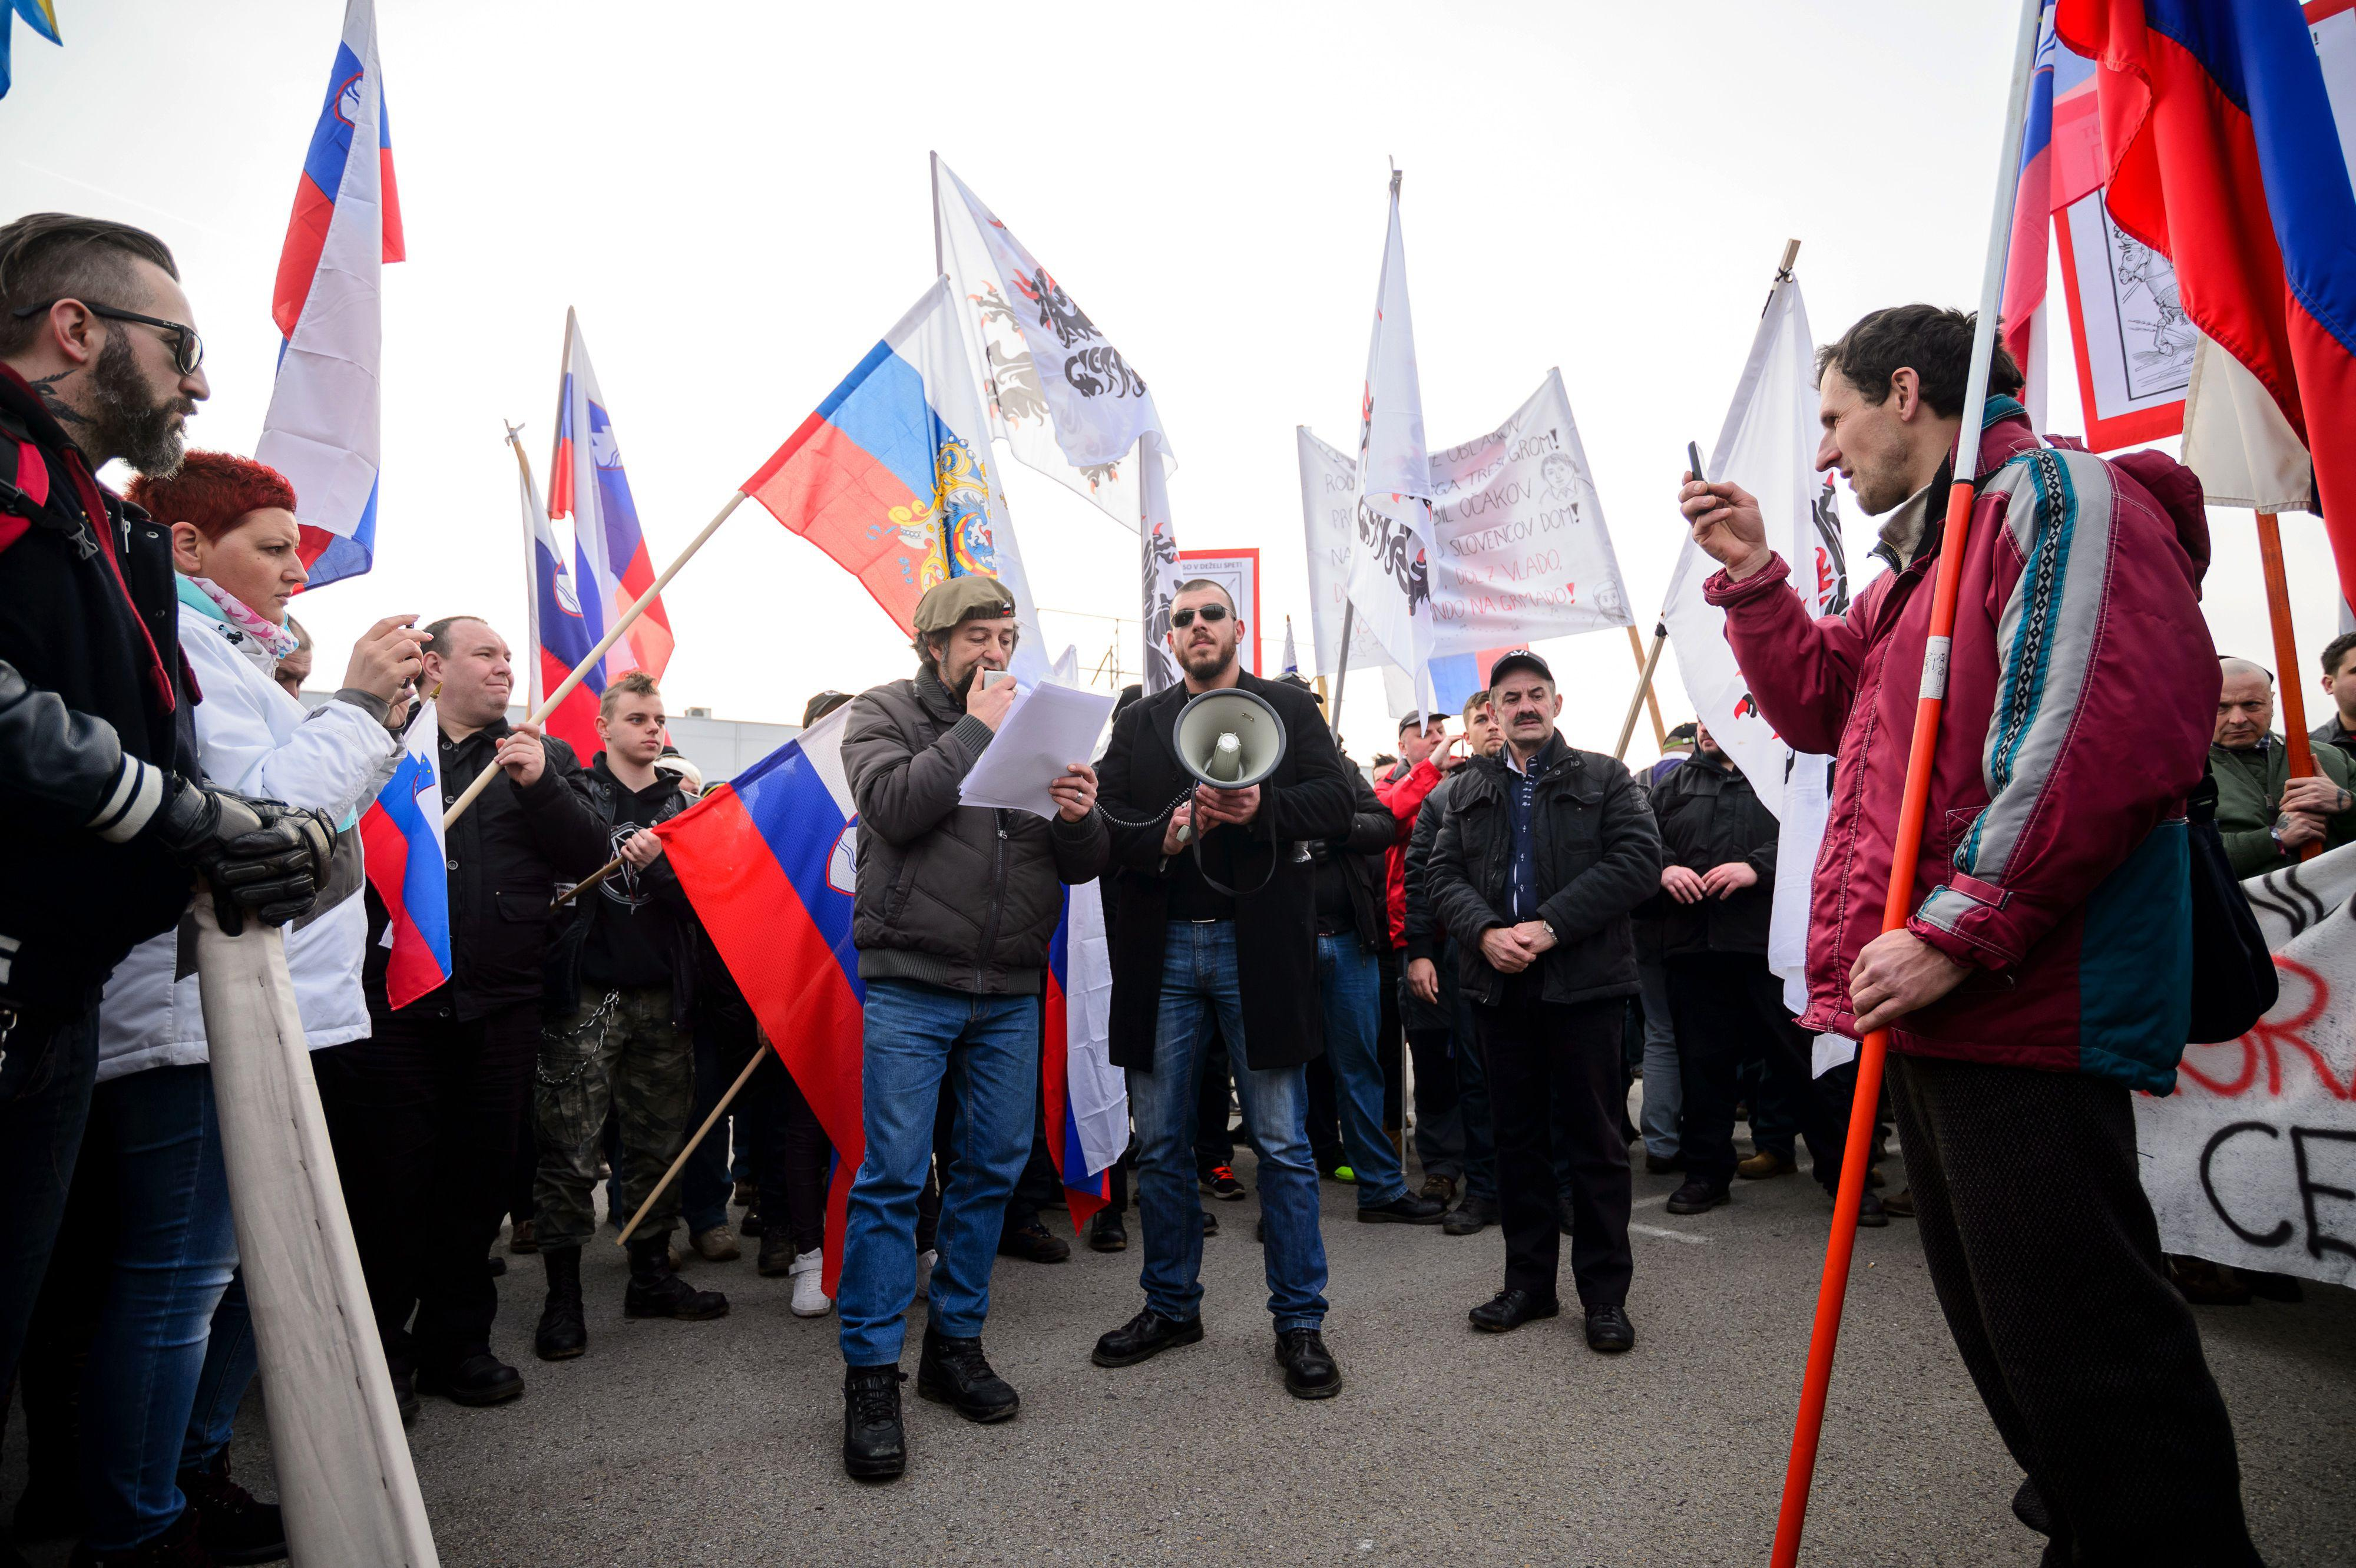 People wave Slovenian flags during a protest against the possible opening of a center for migrants in the vicinity of the town of Sencur, some 25km north of Ljubljana, on February 20, 2016. Slovenia said on February 14 that it would clamp down on the number of migrants allowed to enter the country, ahead of tougher measures set to be announced by neighbouring Austria later this week to slow down the influx. The country of nearly nine million people last year received 90,000 asylum claims, one of the bloc's highest rates per capita. / AFP / Jure Makovec/AFP